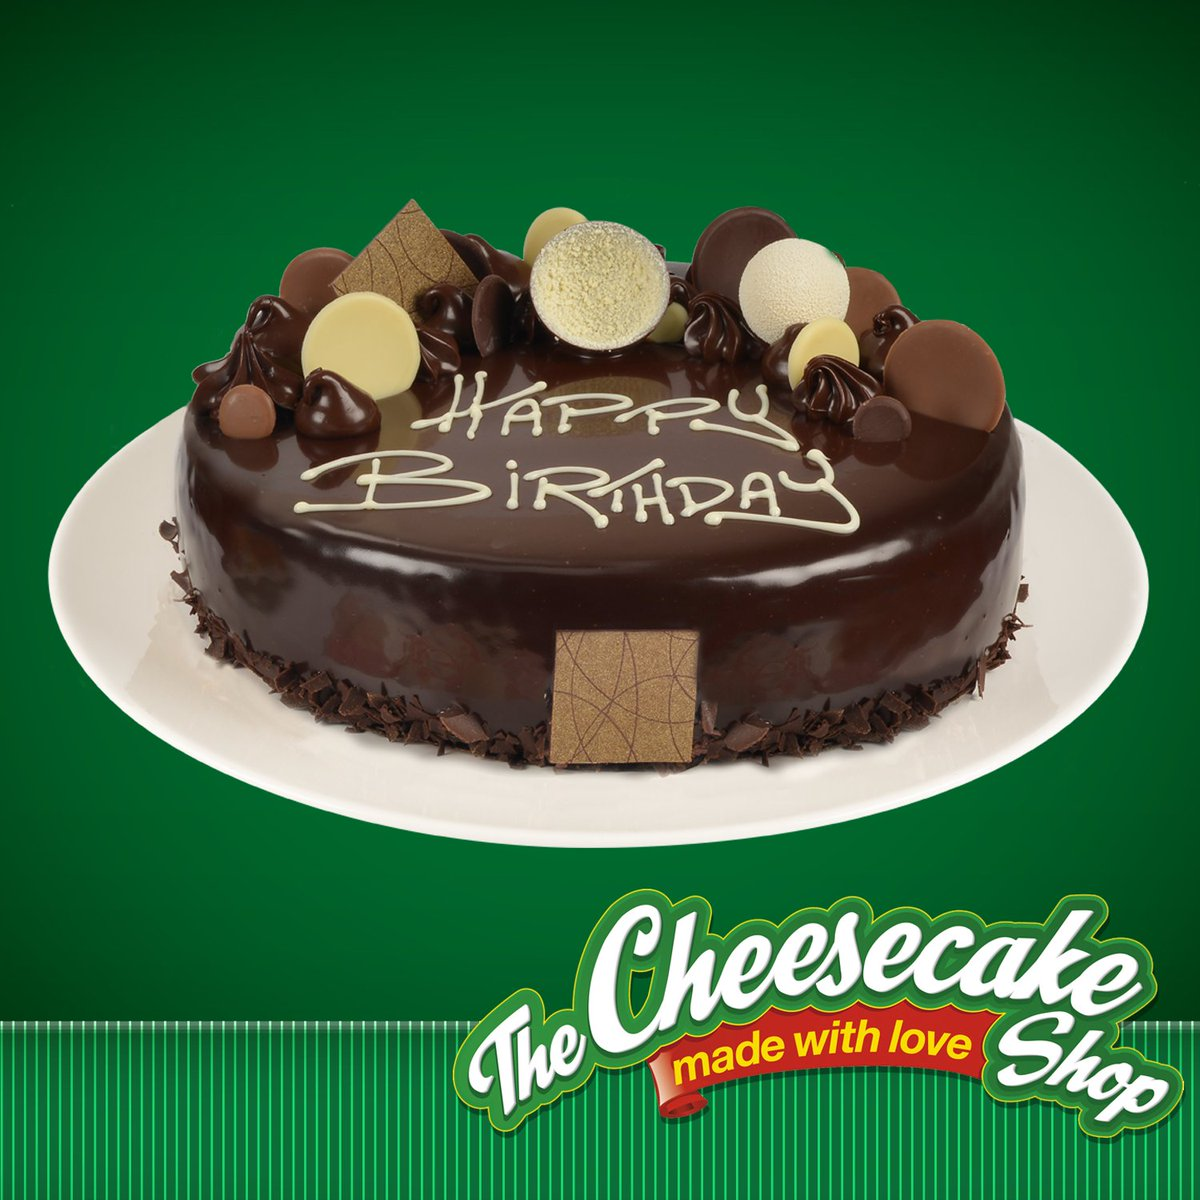 The Cheesecake Shop On Twitter Our New Lets Celebrate Mudcake Is